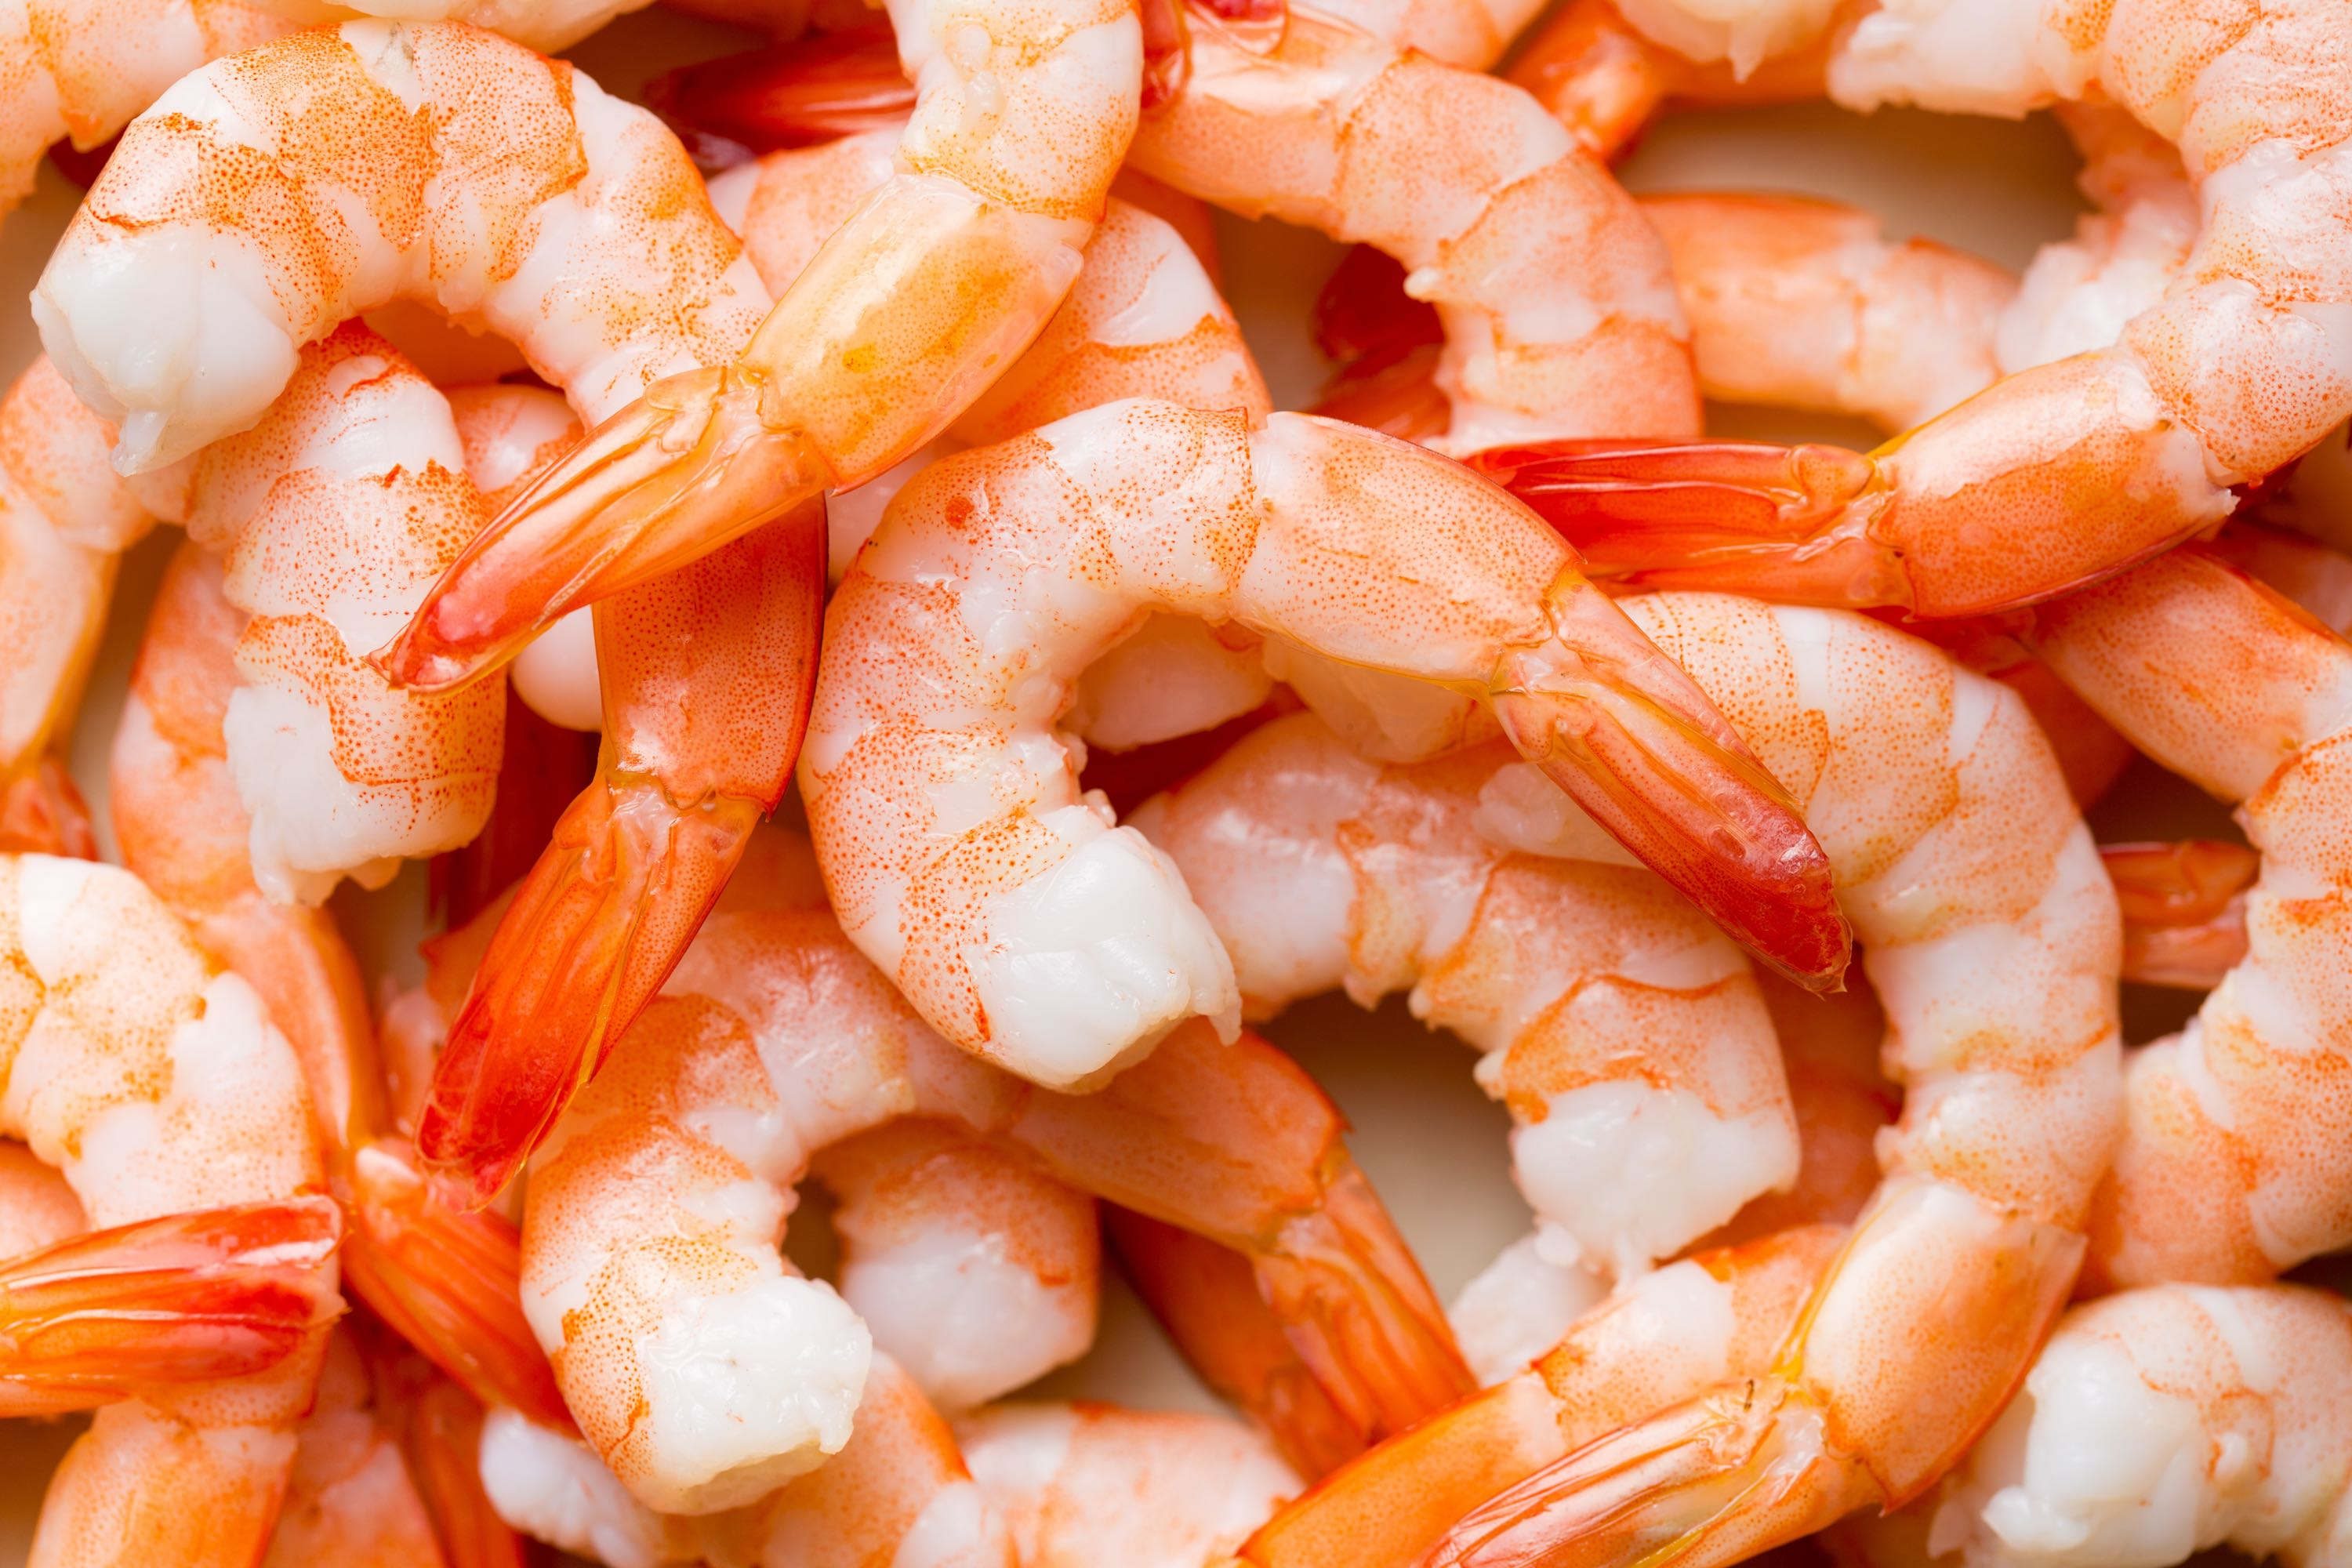 If you have frozen shrimp in your freezer, read this before eating them